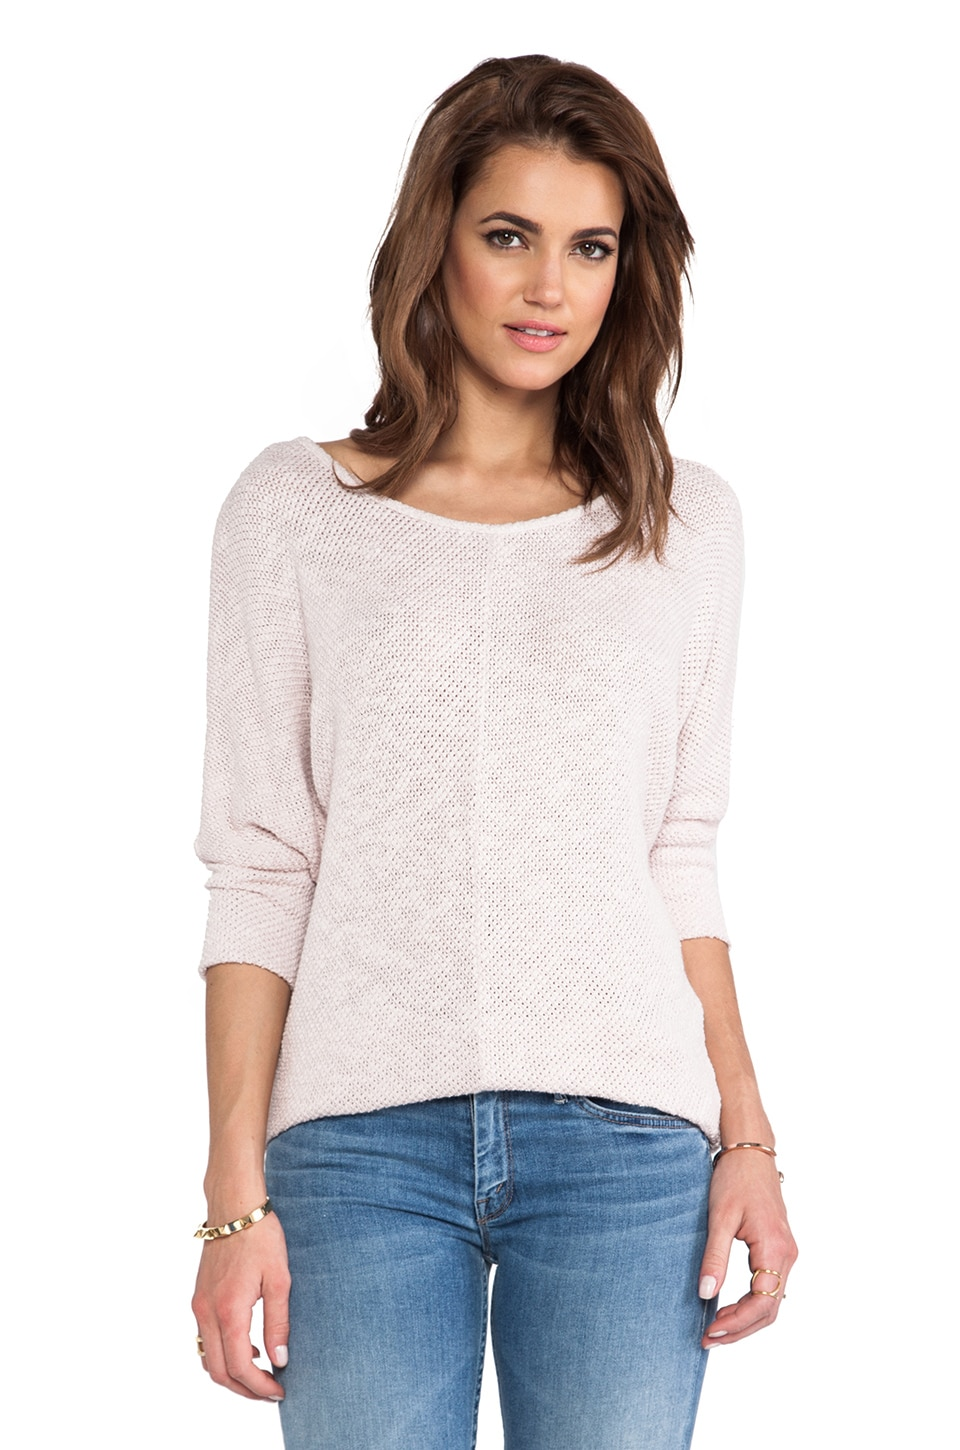 Velvet by Graham & Spencer Talora Cotton Crochet Sweater in Ribbon